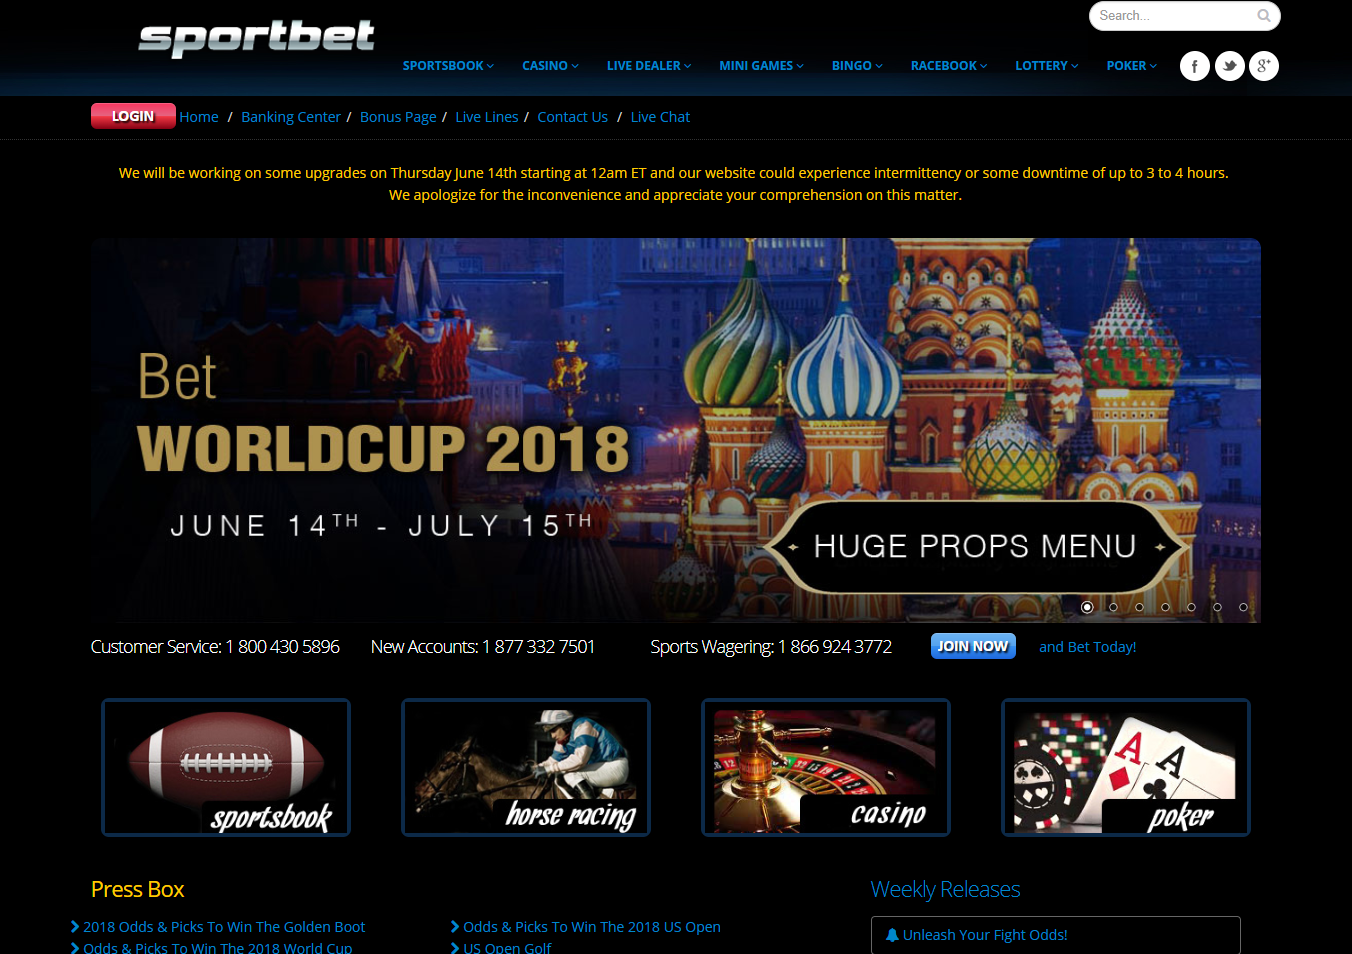 Sportbet.com USA Sportsbook Review + Free Bonus Bets